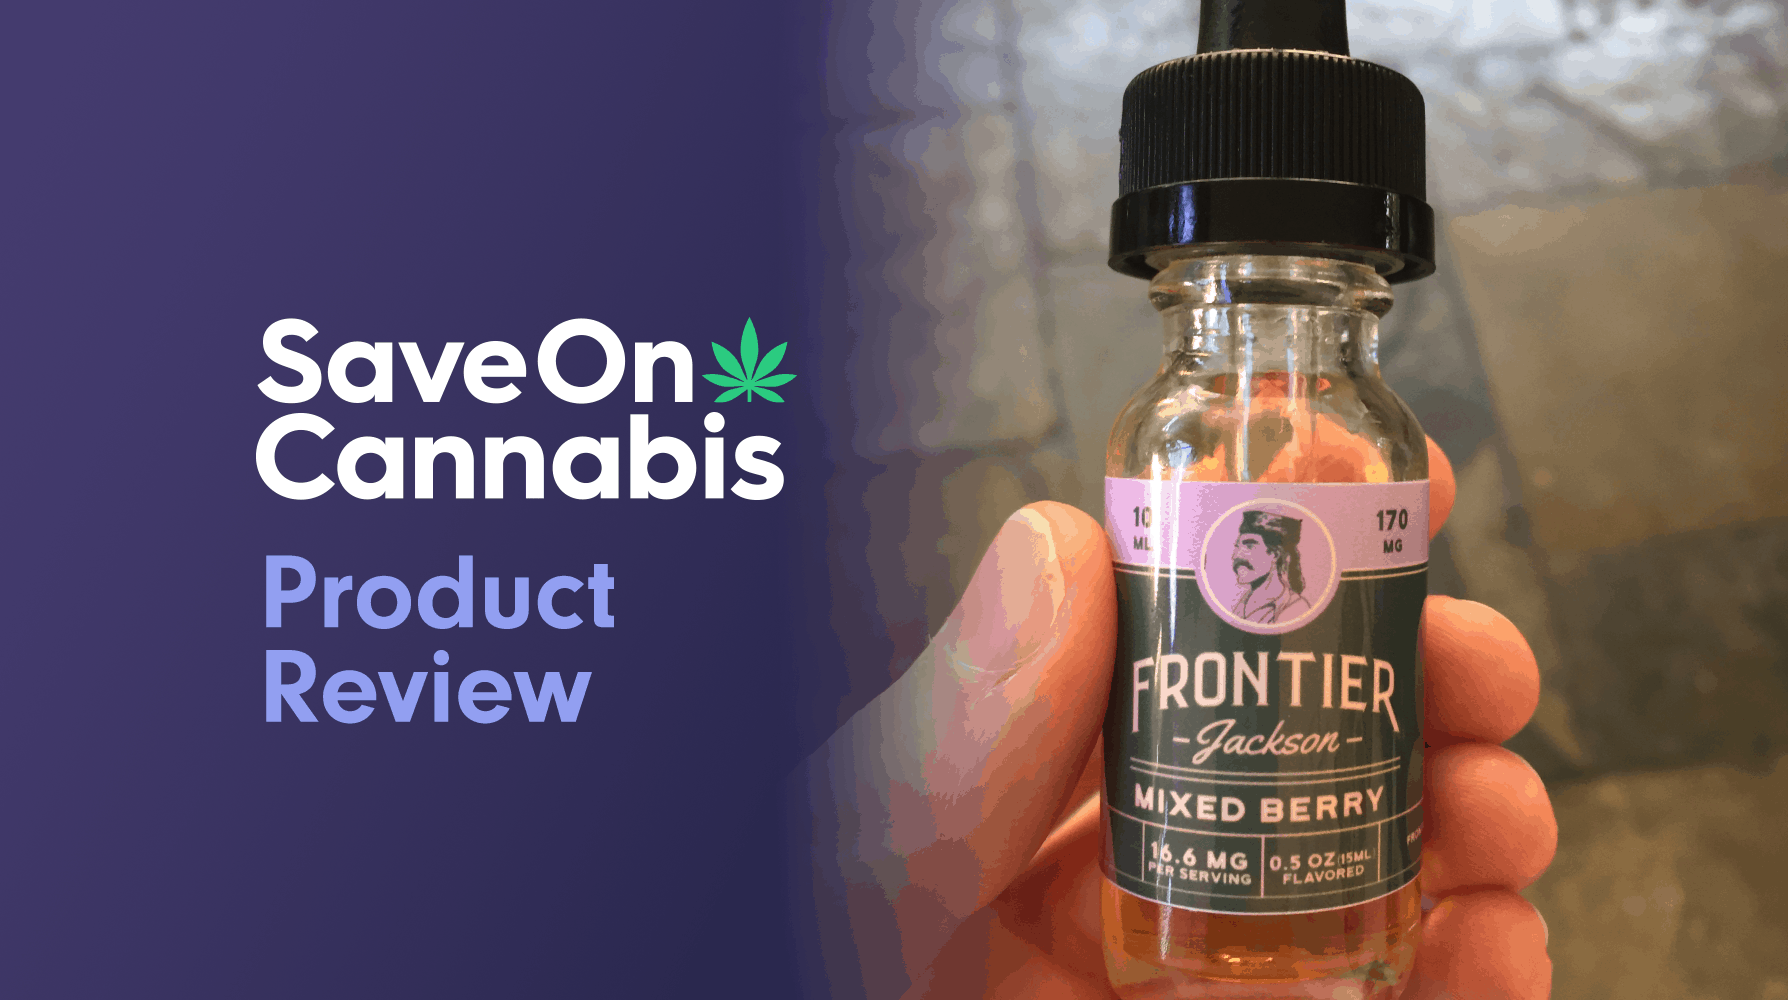 Frontier Jackson review save on cannabis Review Website